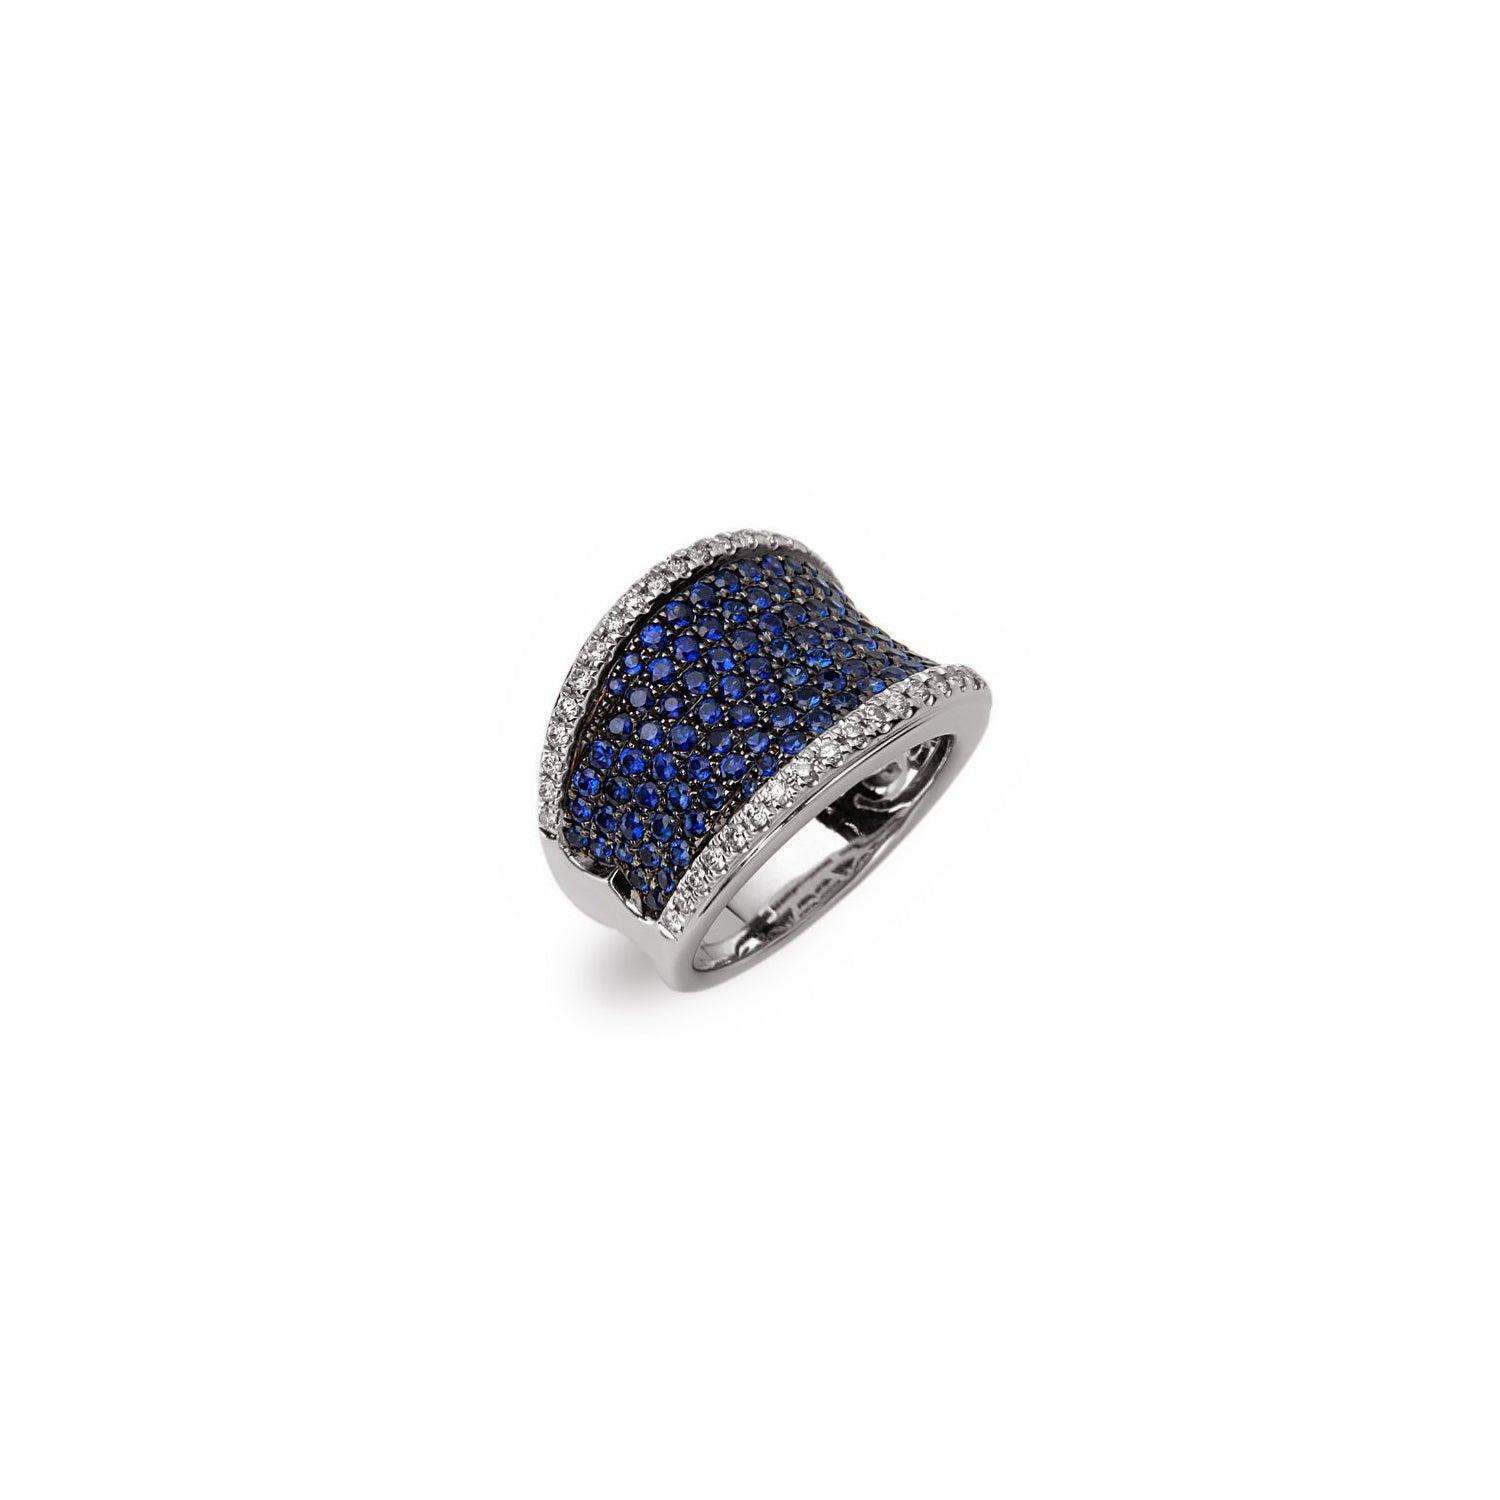 Charles Krypell White Gold Sapphire Pave Saddle Ring with Diamonds